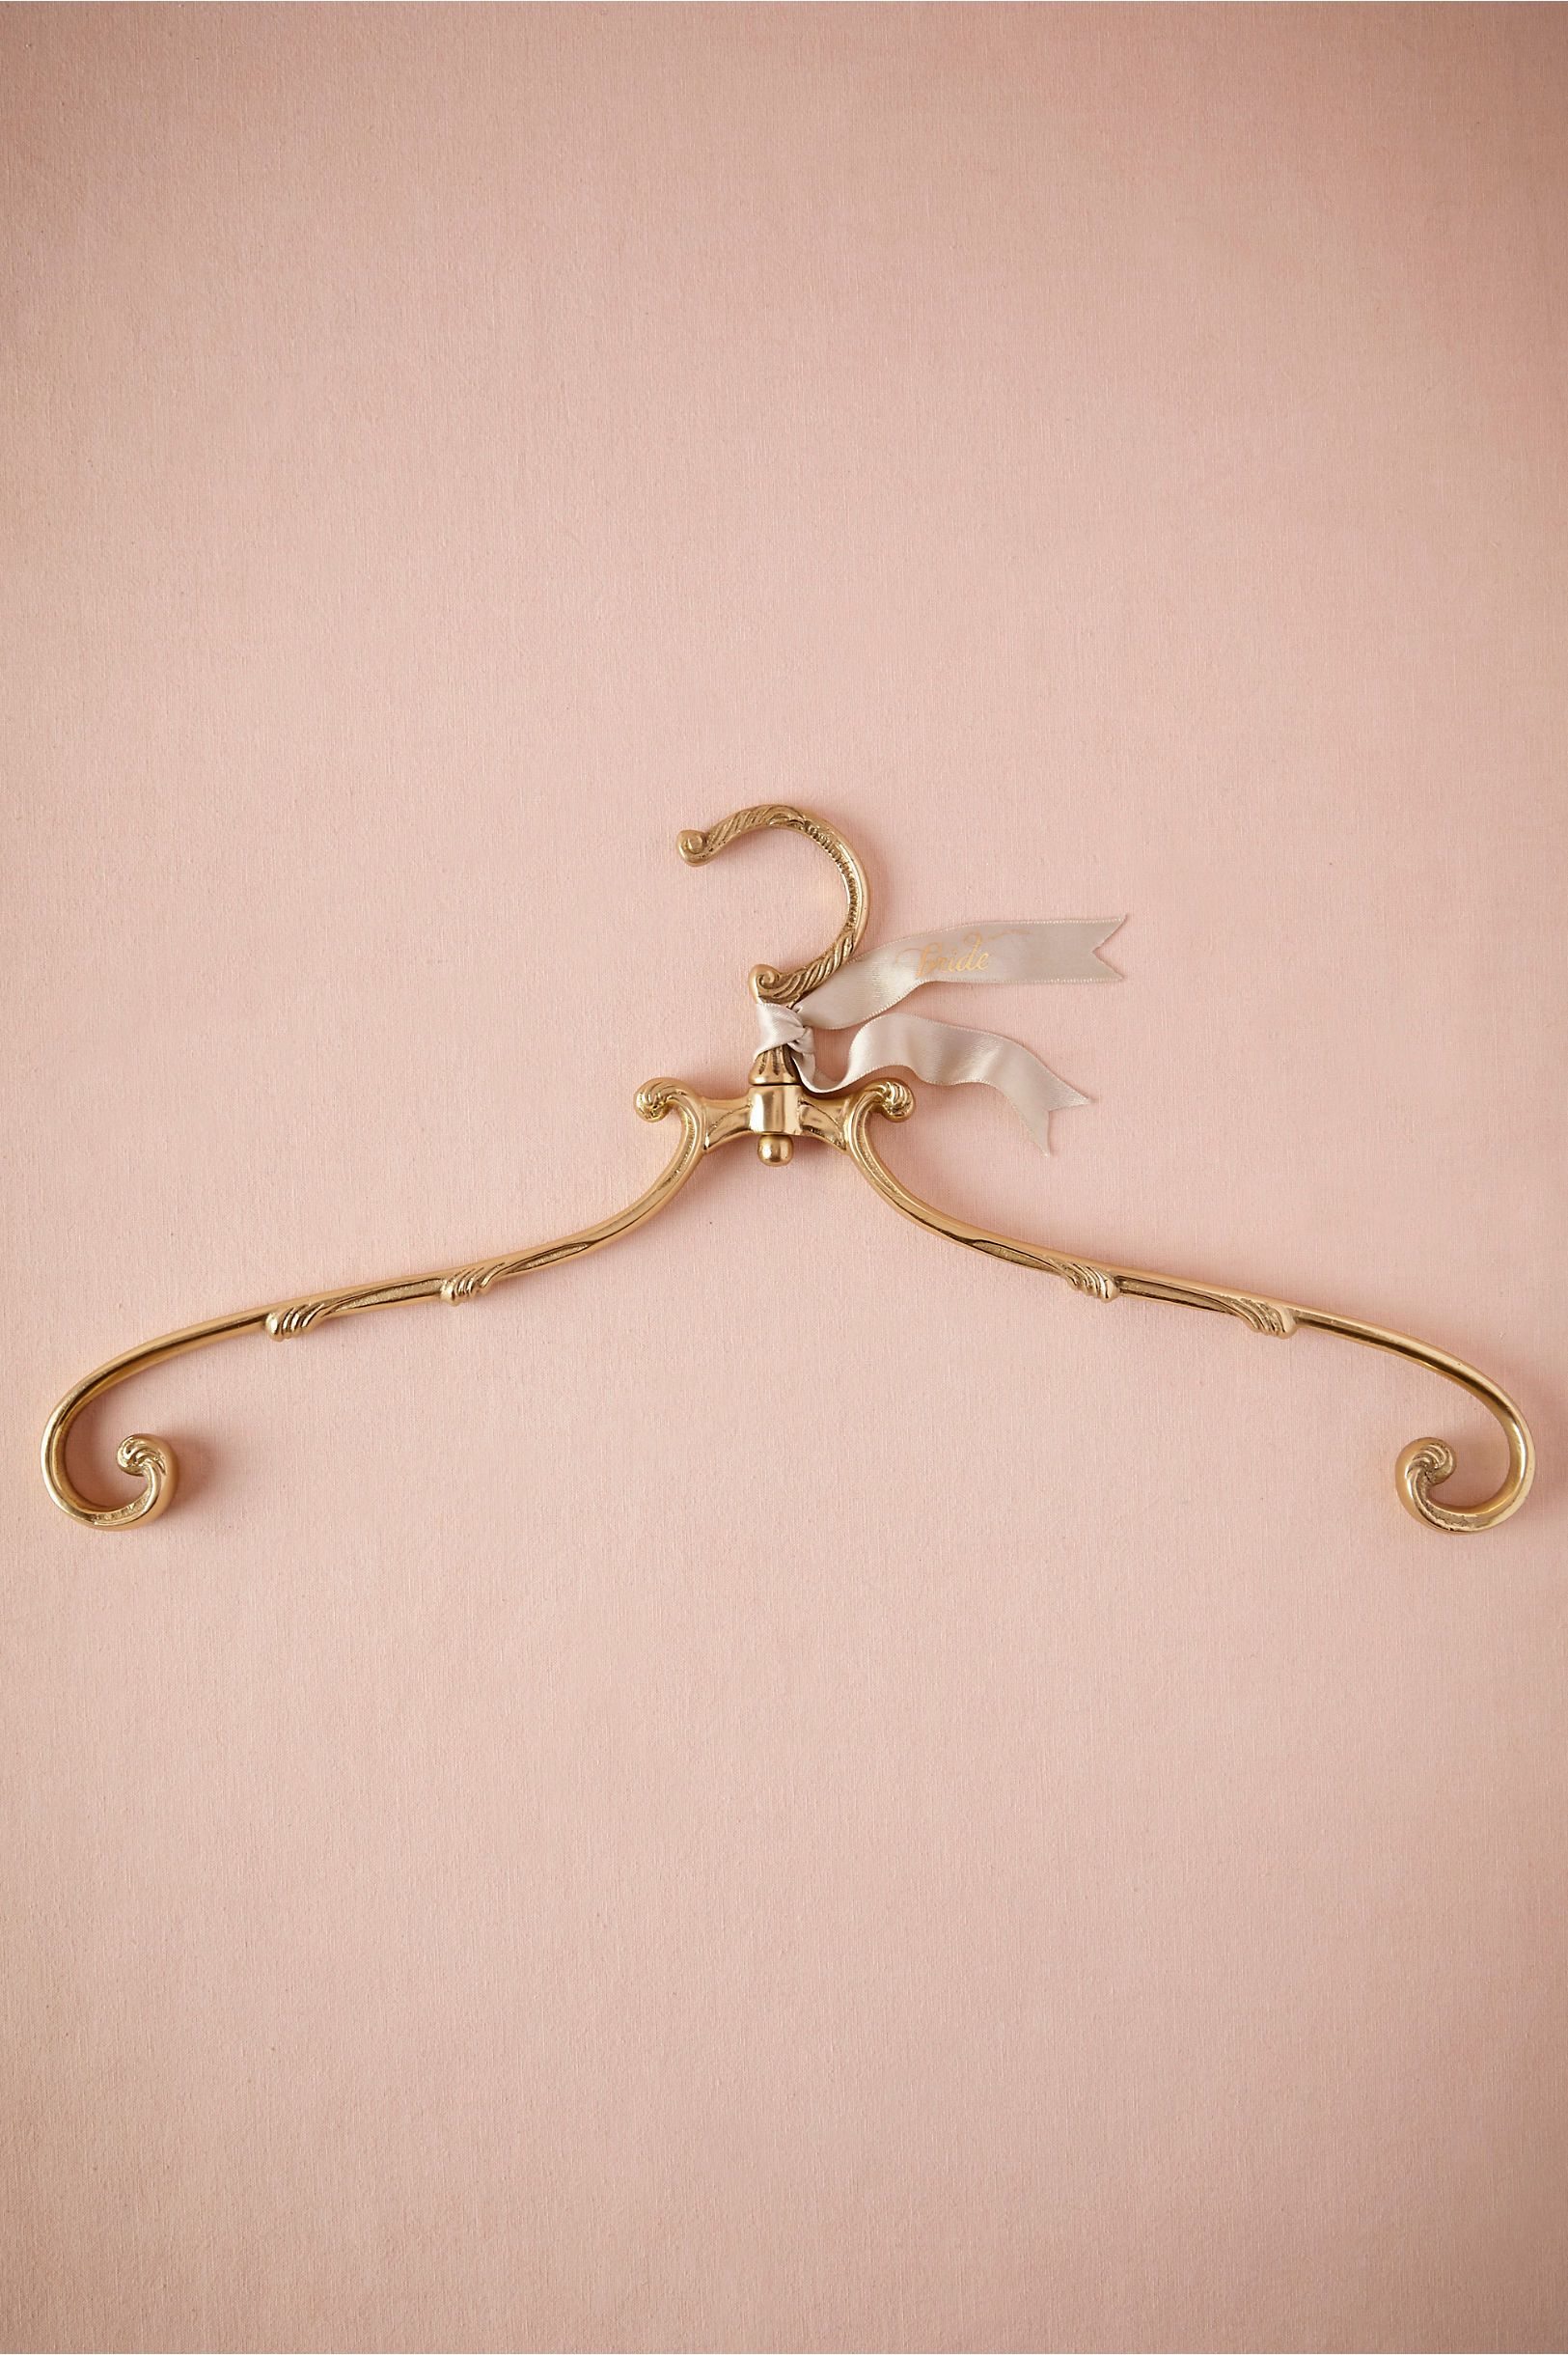 BHLDN s French Market Hanger in Gold